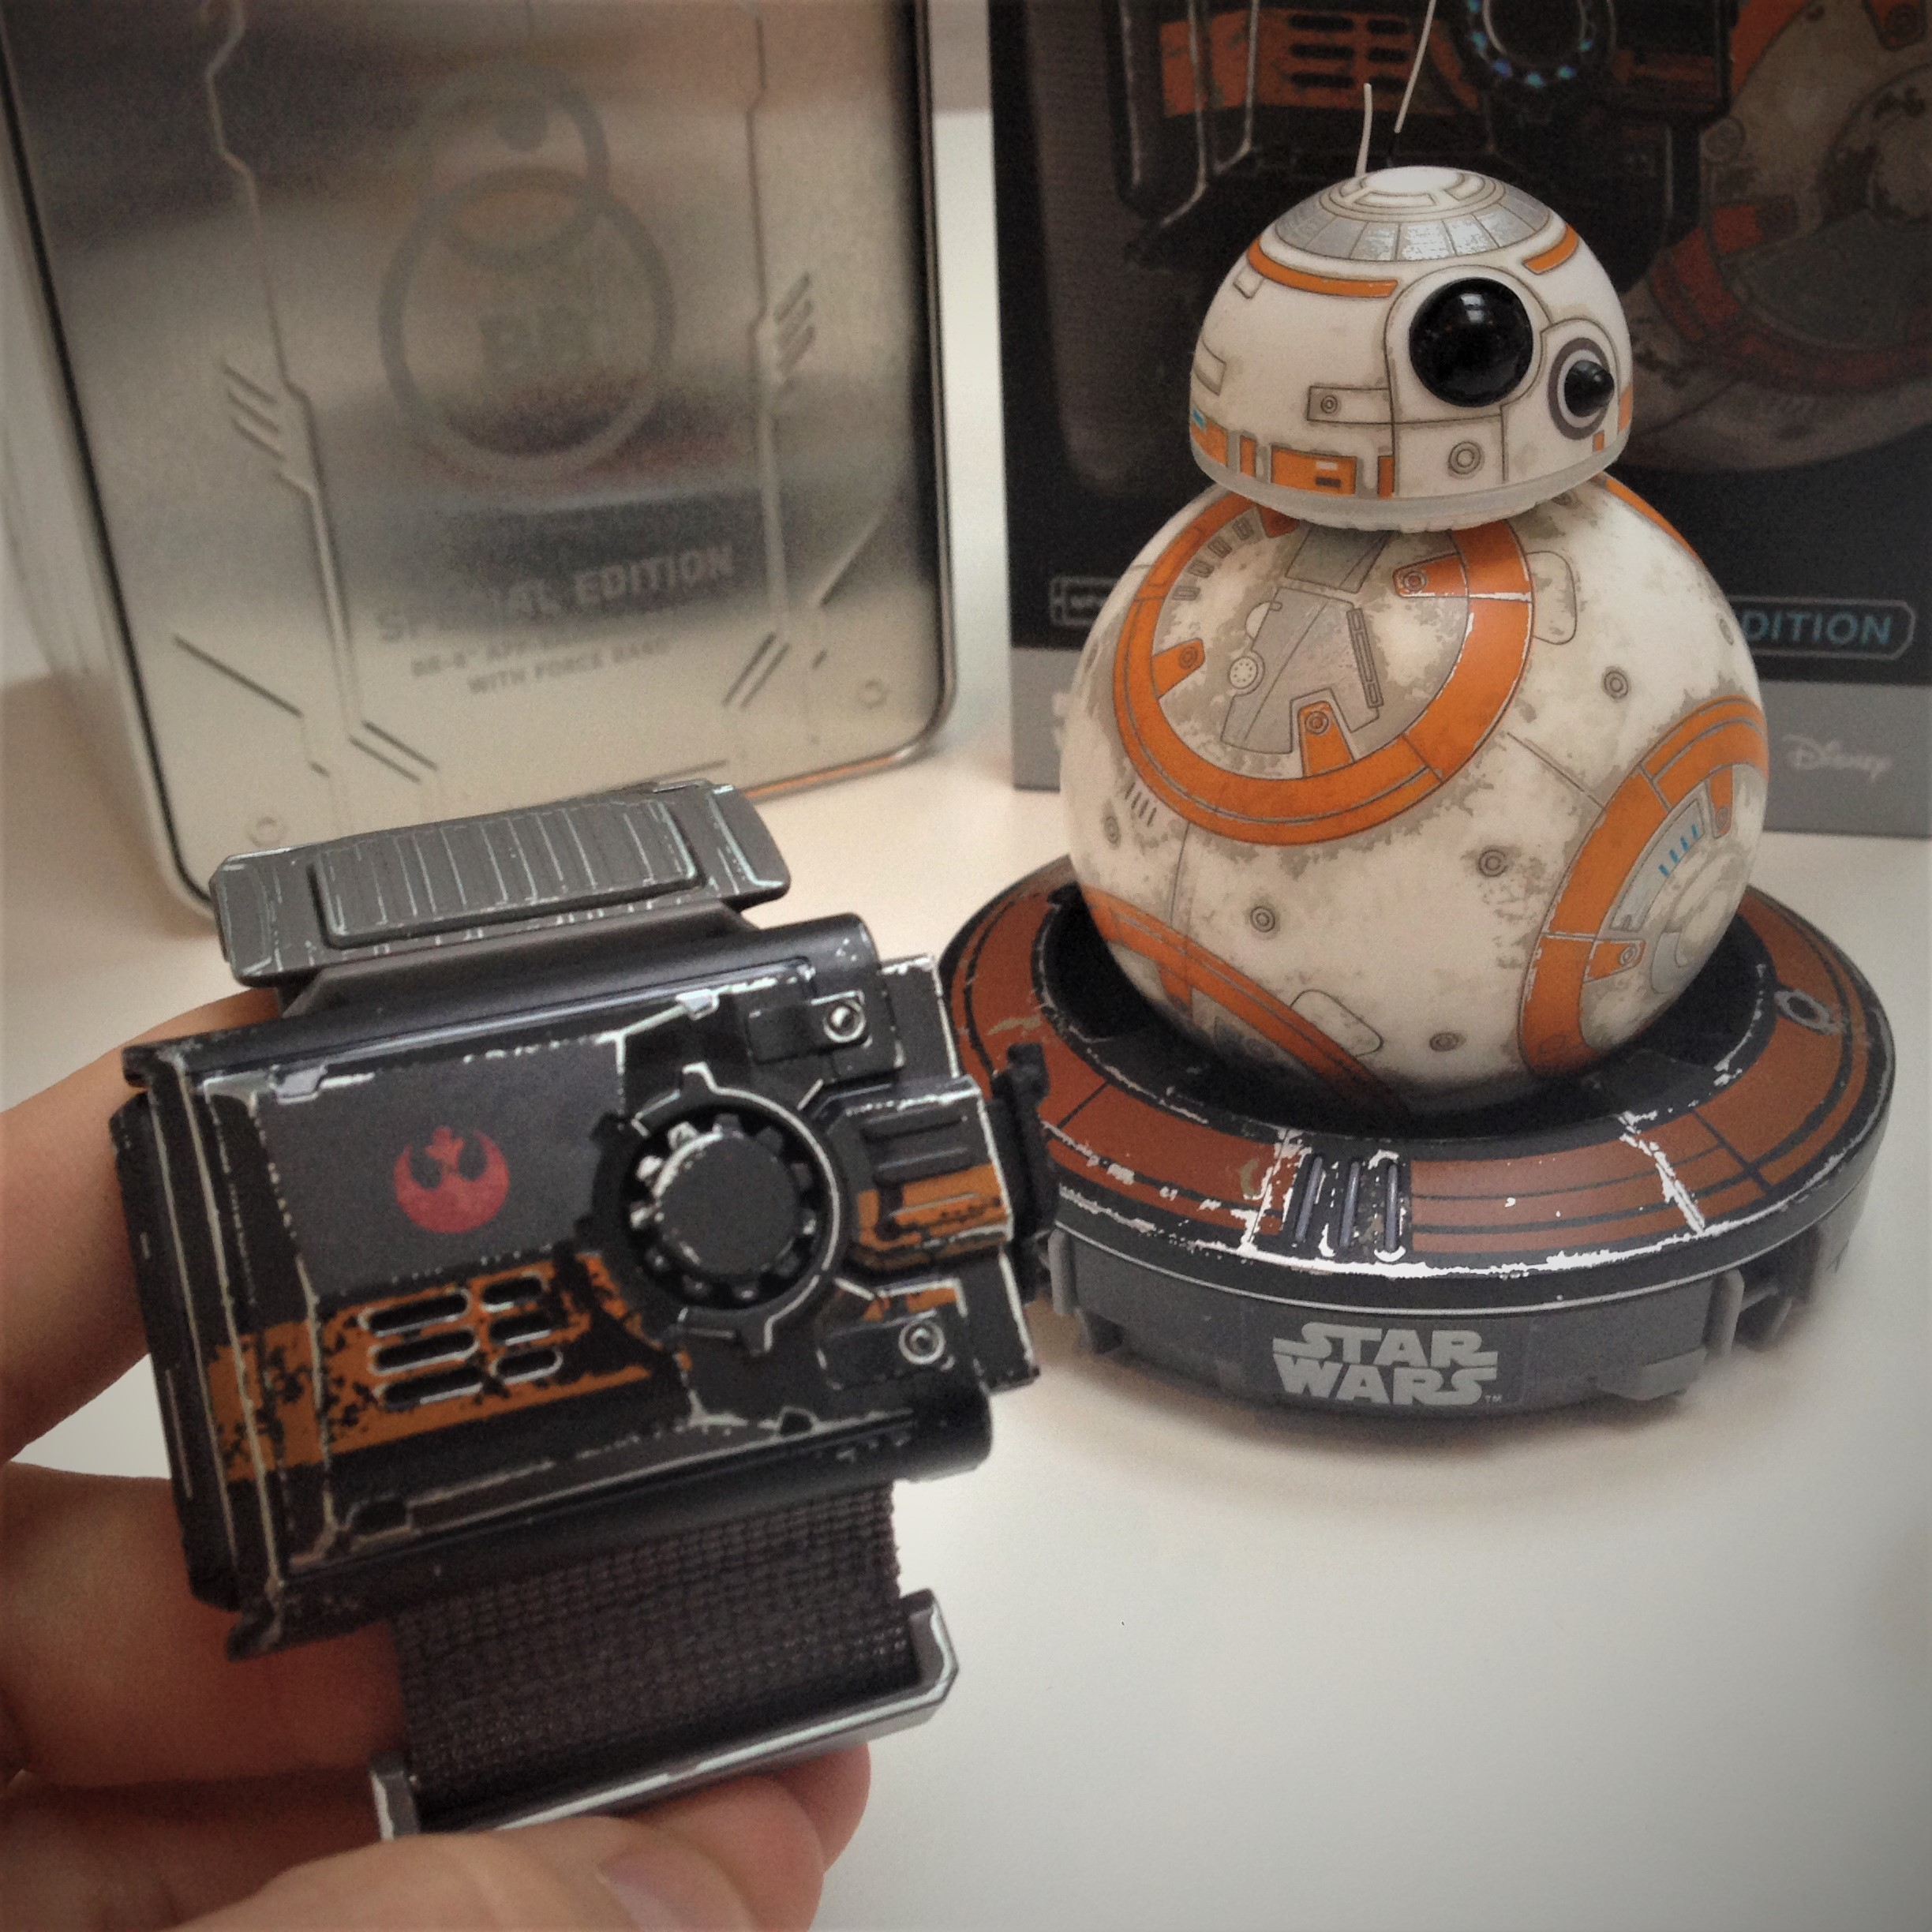 bb-8-star-wars-sphero-battle-worn-bb-8-disney-coolstuff-fiktion-kultur-5